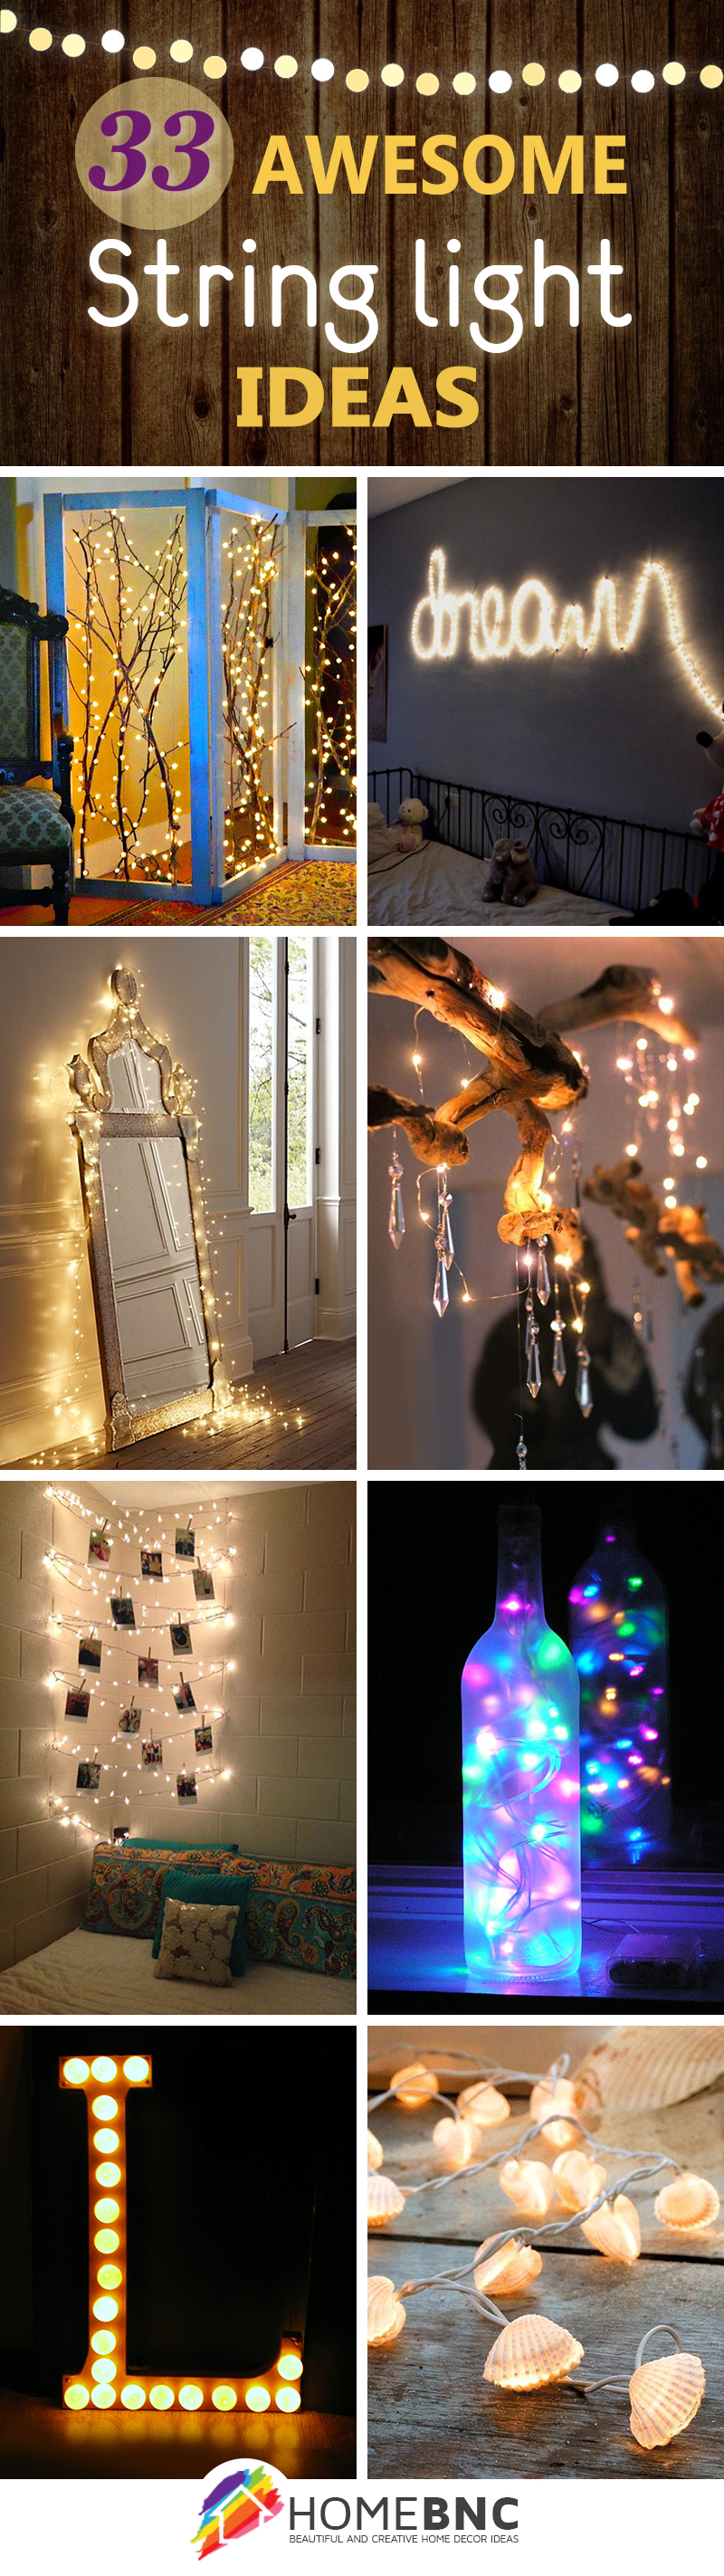 String Lights Decorations